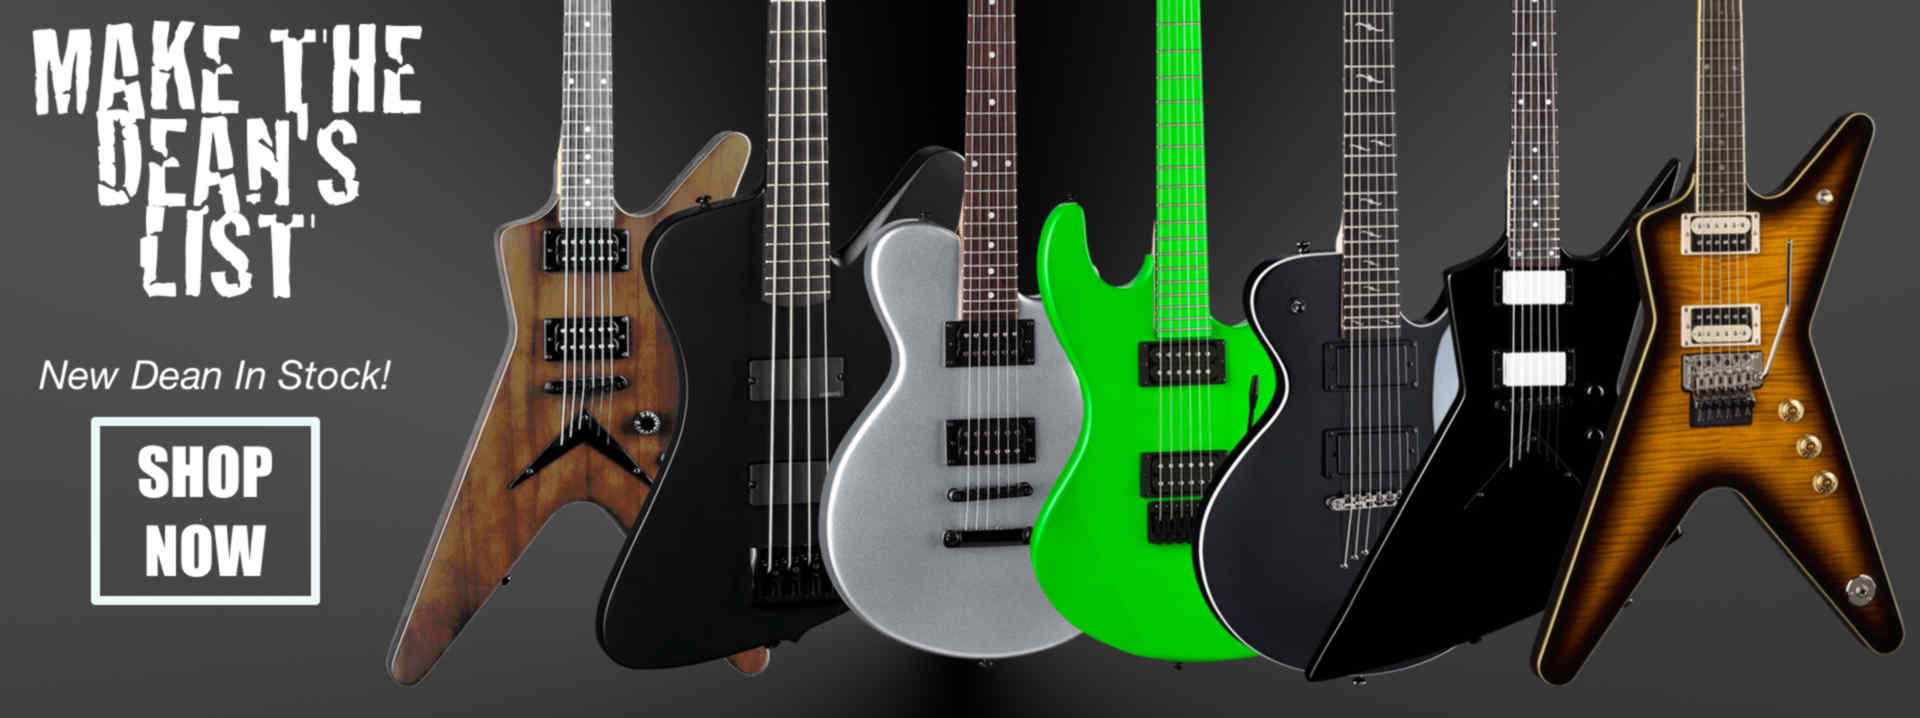 Dean Guitars at Hoover Music